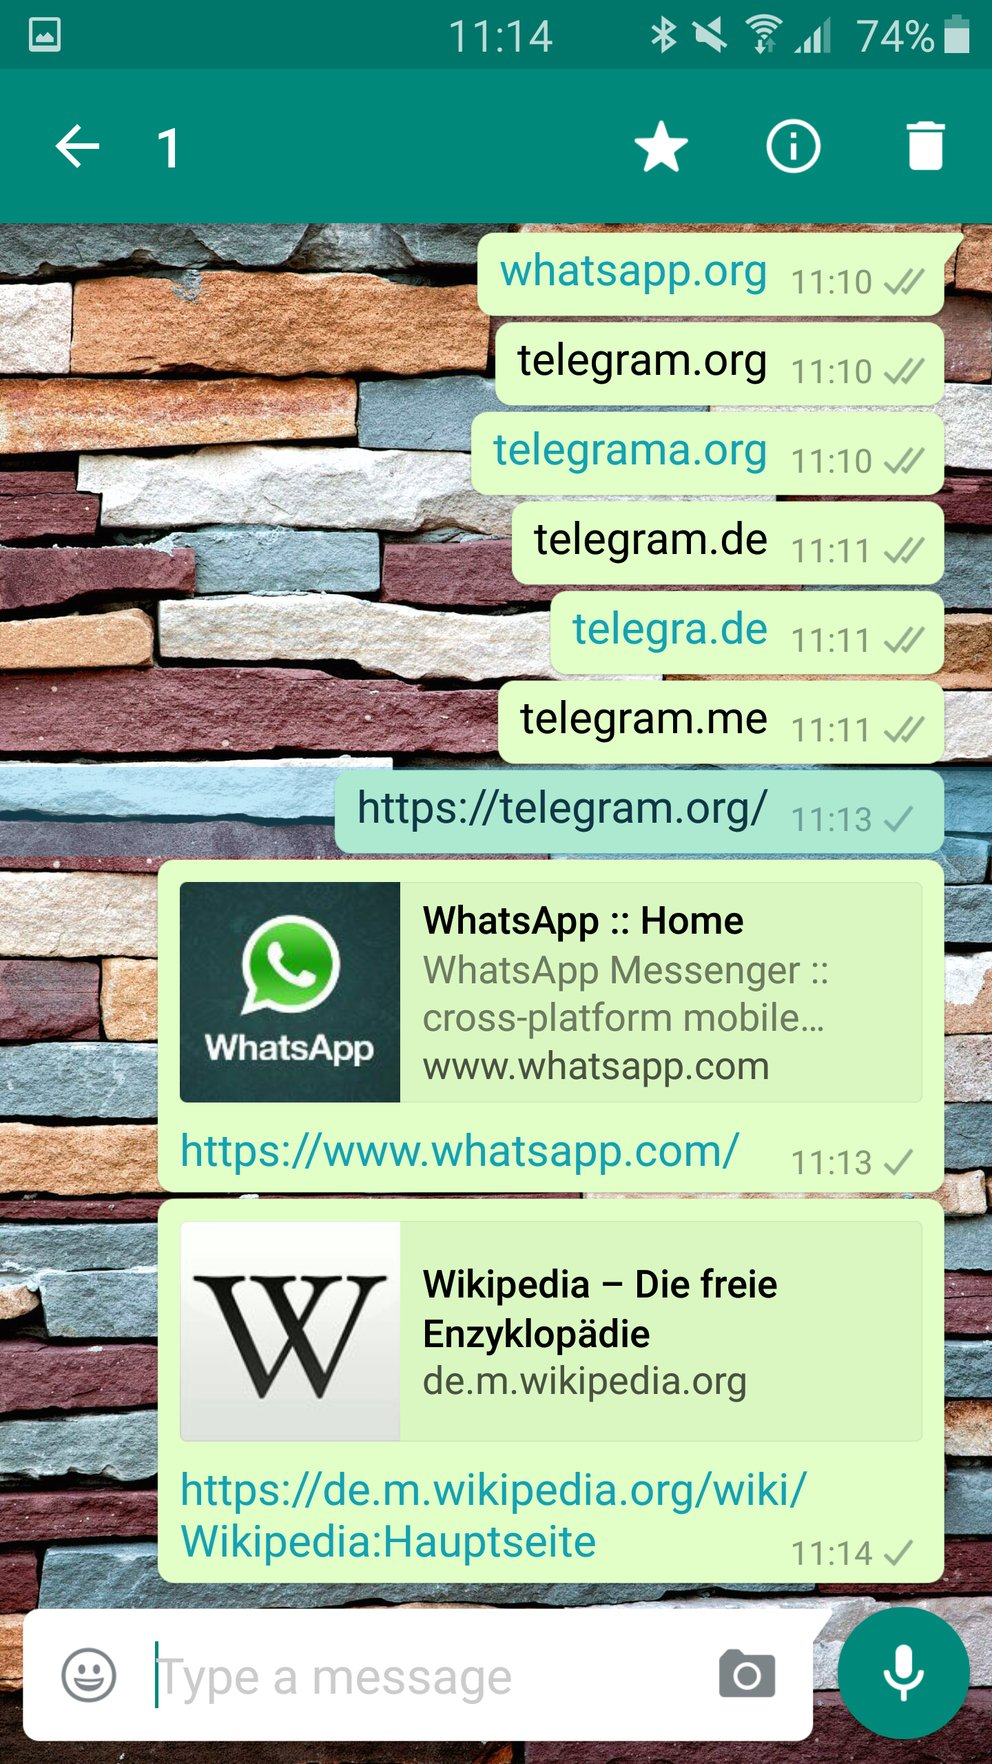 whatsapp-telegram-zensur-screenshot-2